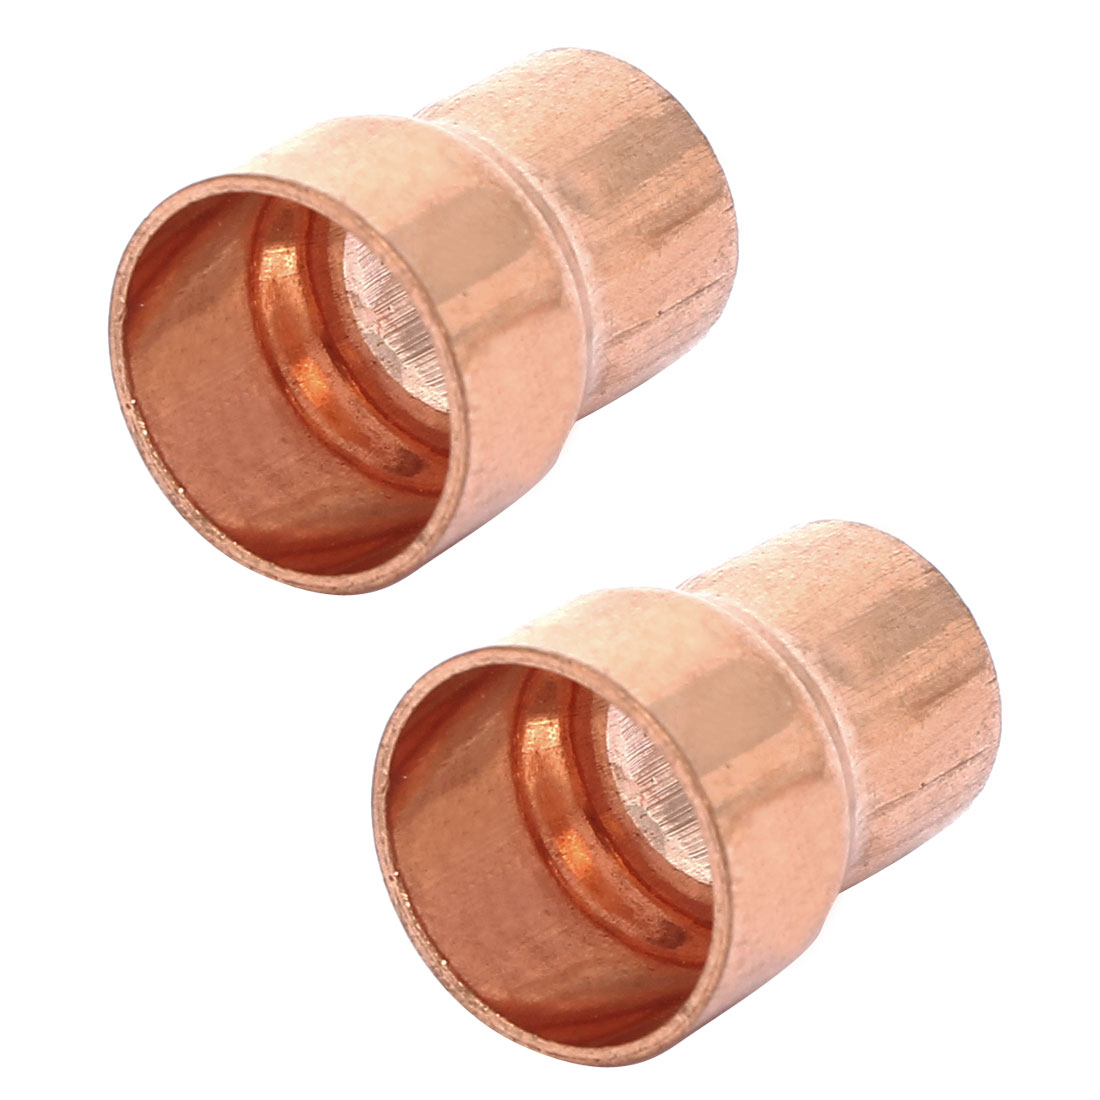 16mmx12.7mm Tube Air Conditioner Copper Reducer Straight Fittings 2pcs